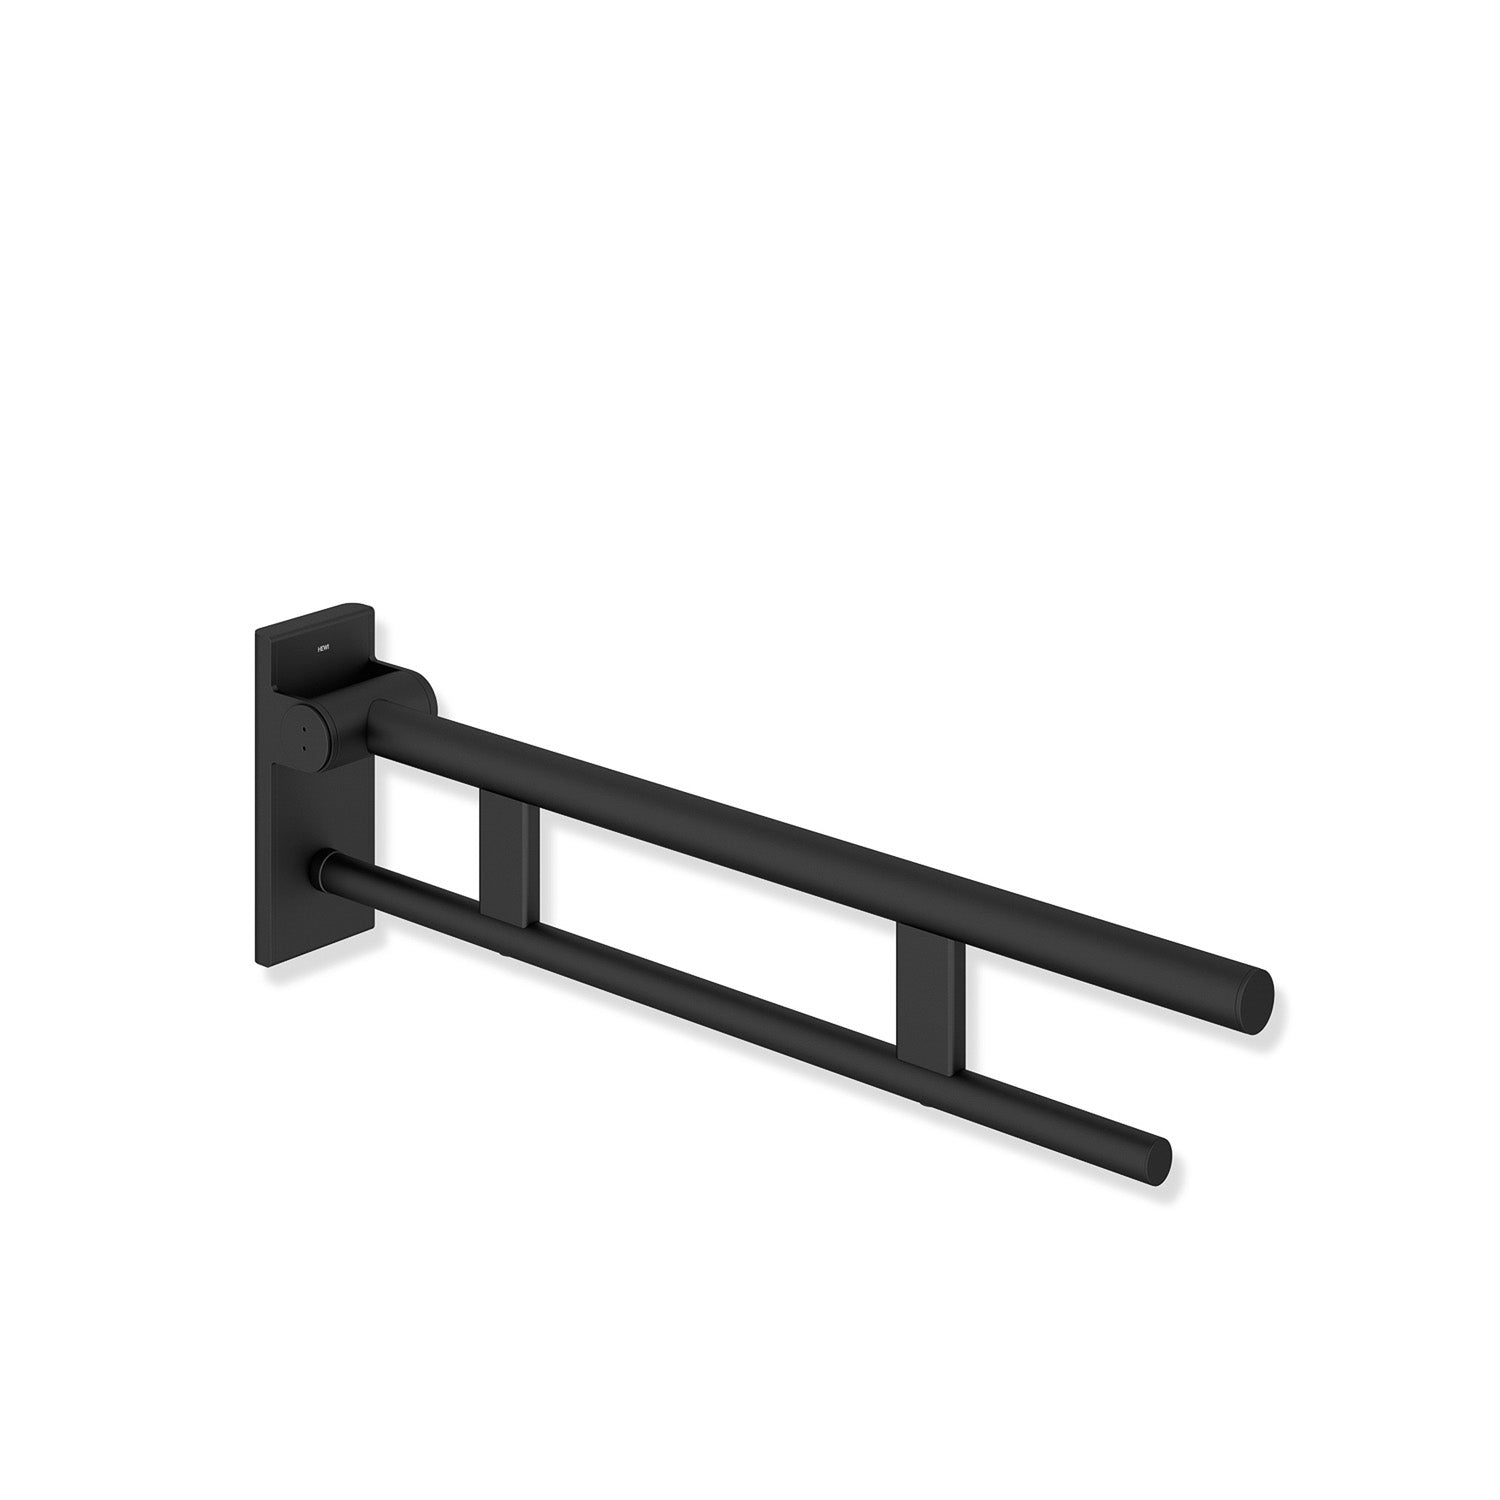 850mm Freestyle Removable Hinged Grab Rail Set with a matt black finish on a white background